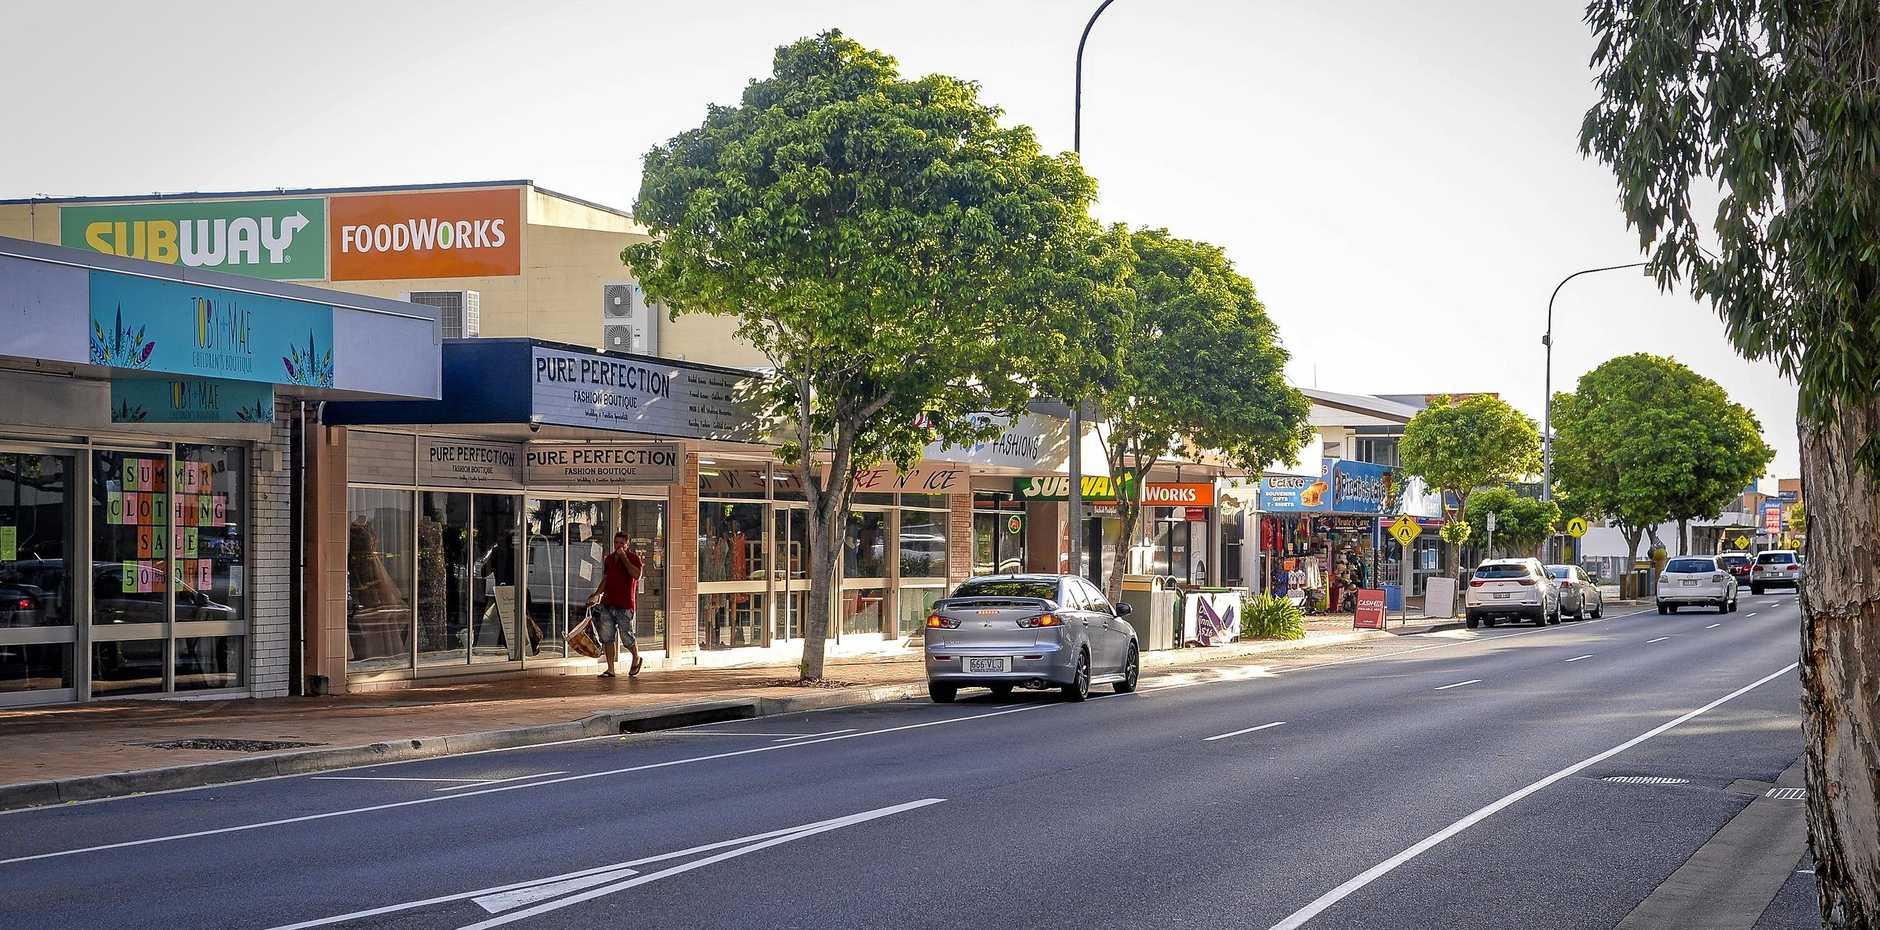 FALLING UNDER BUDGET: Development ideas on the future of the Esplanade (pictured) will have to fall in the council's budget parameters, one councillor claims.